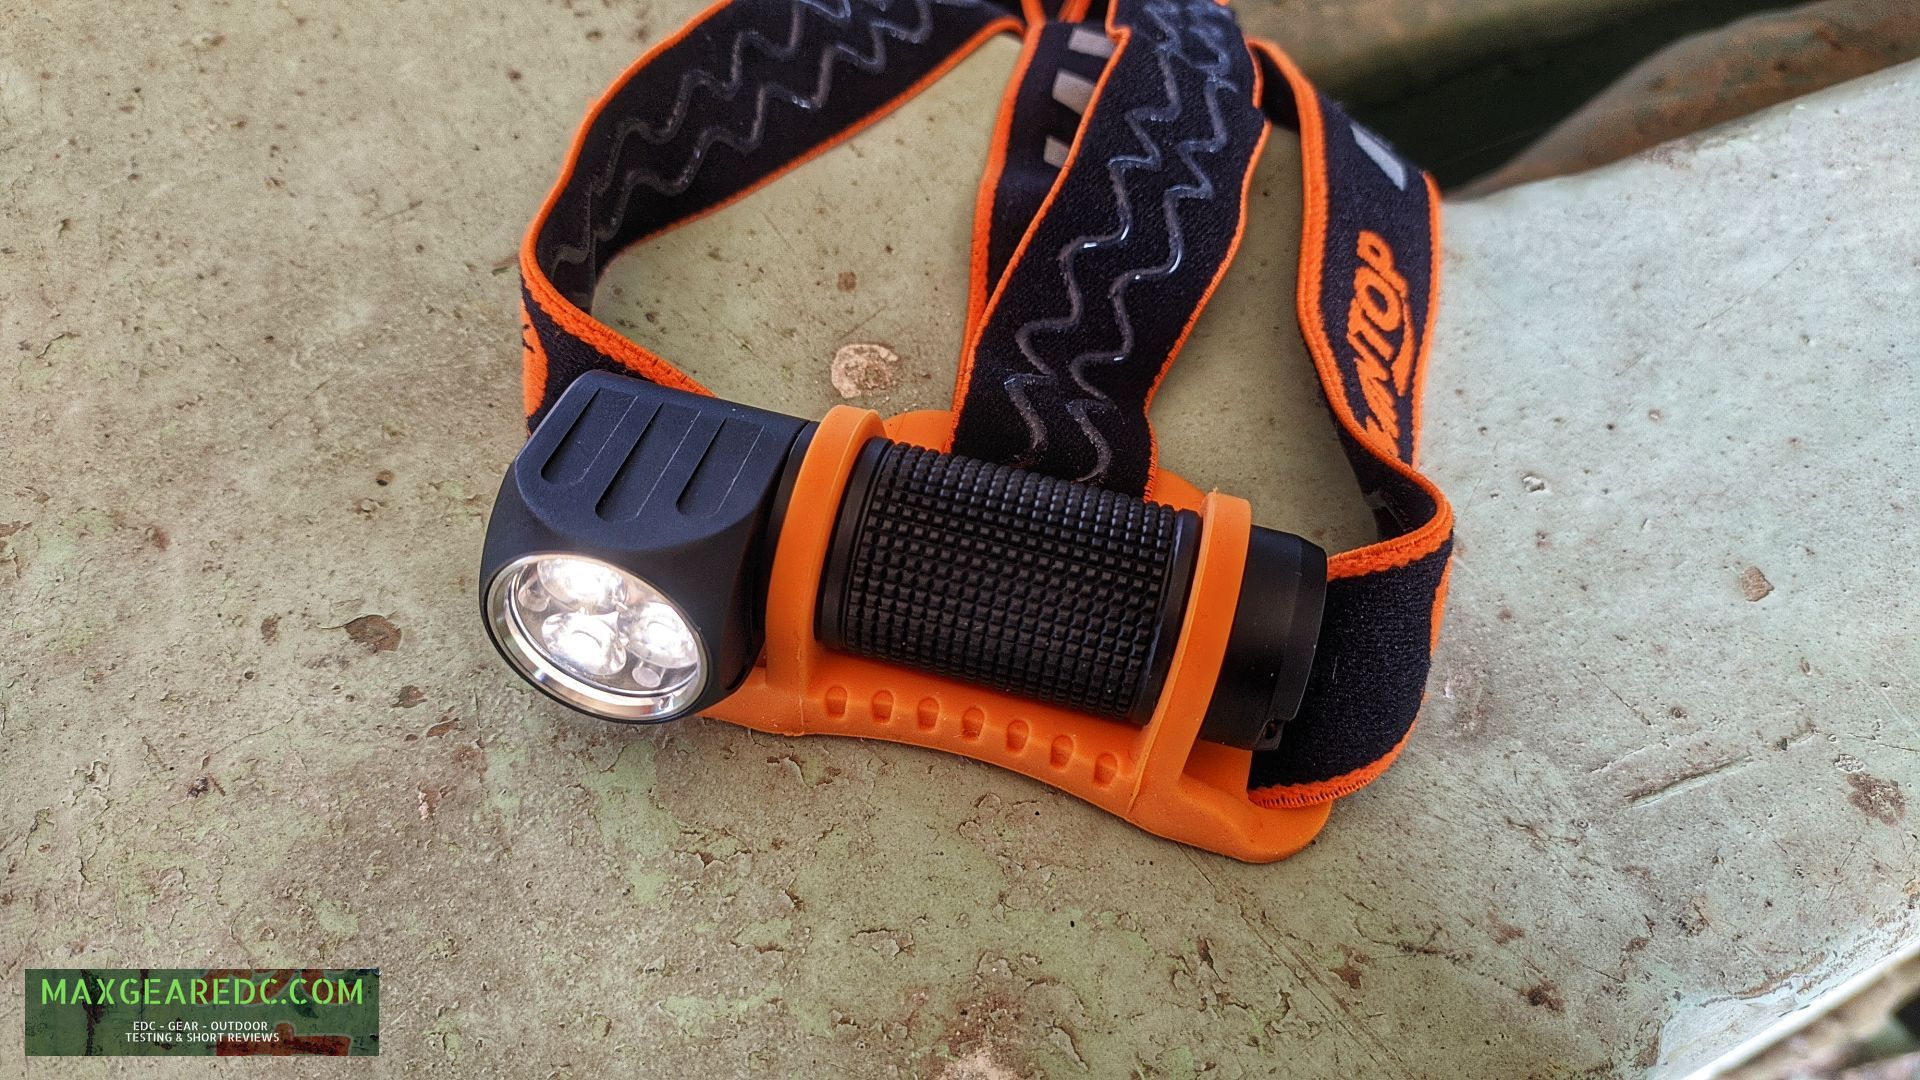 Lumintop_HL3A_Flashlight_Review_SST20_18650_maxgearedc.com_EDC_GEAR_OUTDOOR_TESTING_and_SHORT_REVIEWS_9